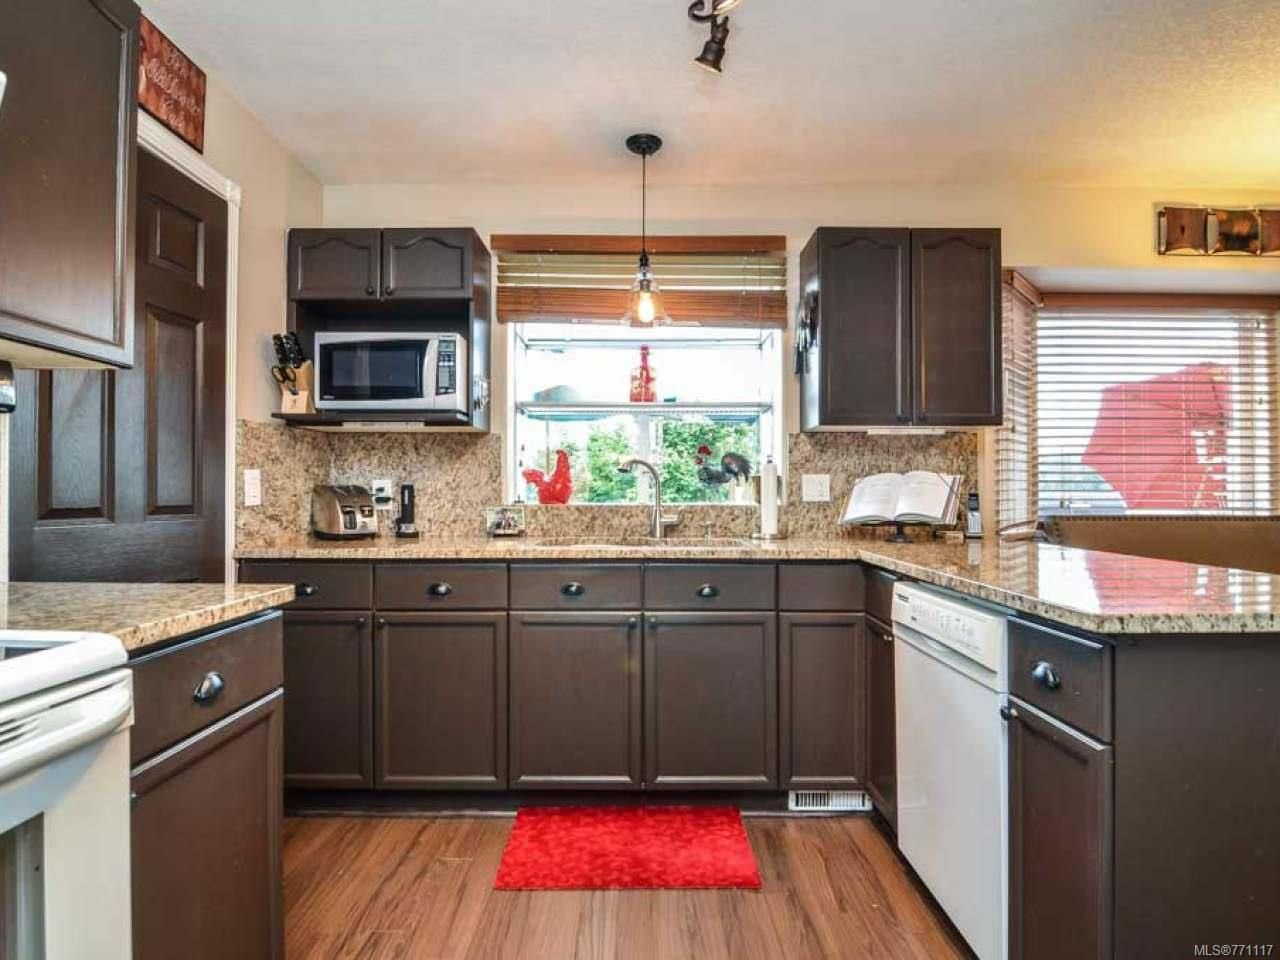 Photo 5: Photos: 697 Steenbuck Dr in CAMPBELL RIVER: CR Campbell River Central House for sale (Campbell River)  : MLS®# 771117